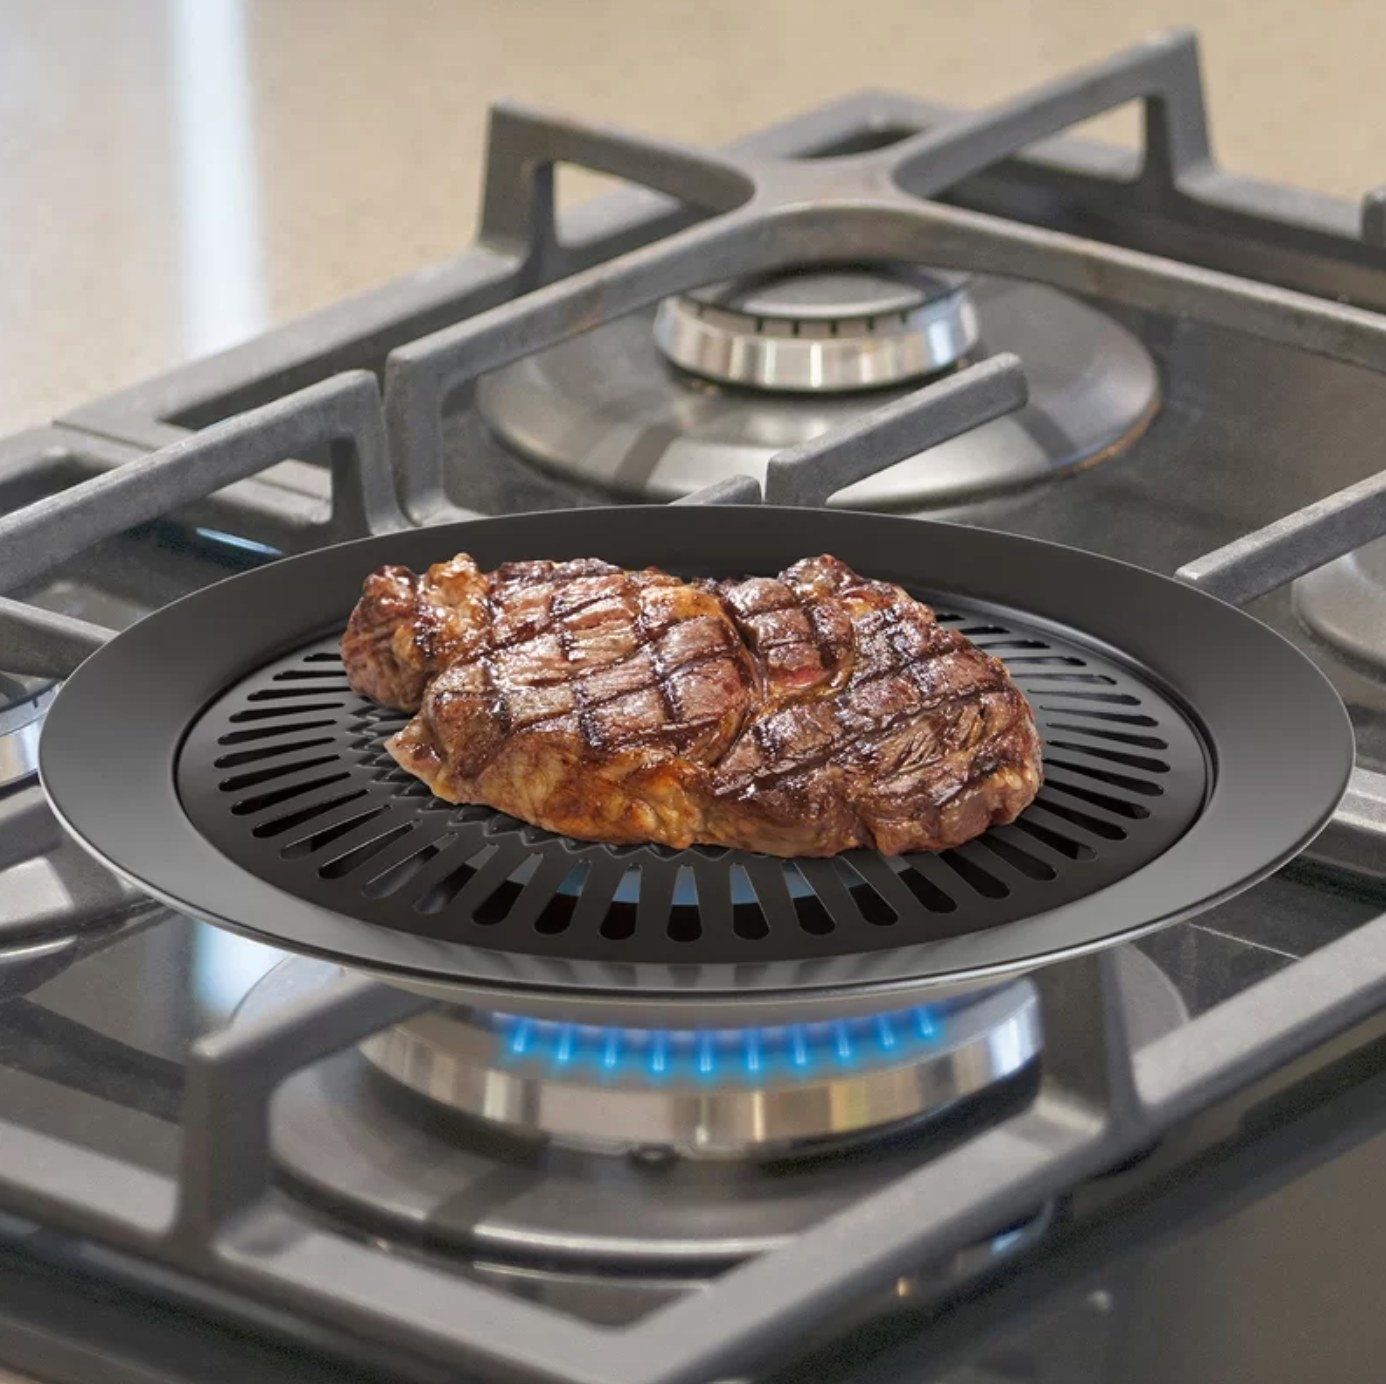 The non-stick grill pan